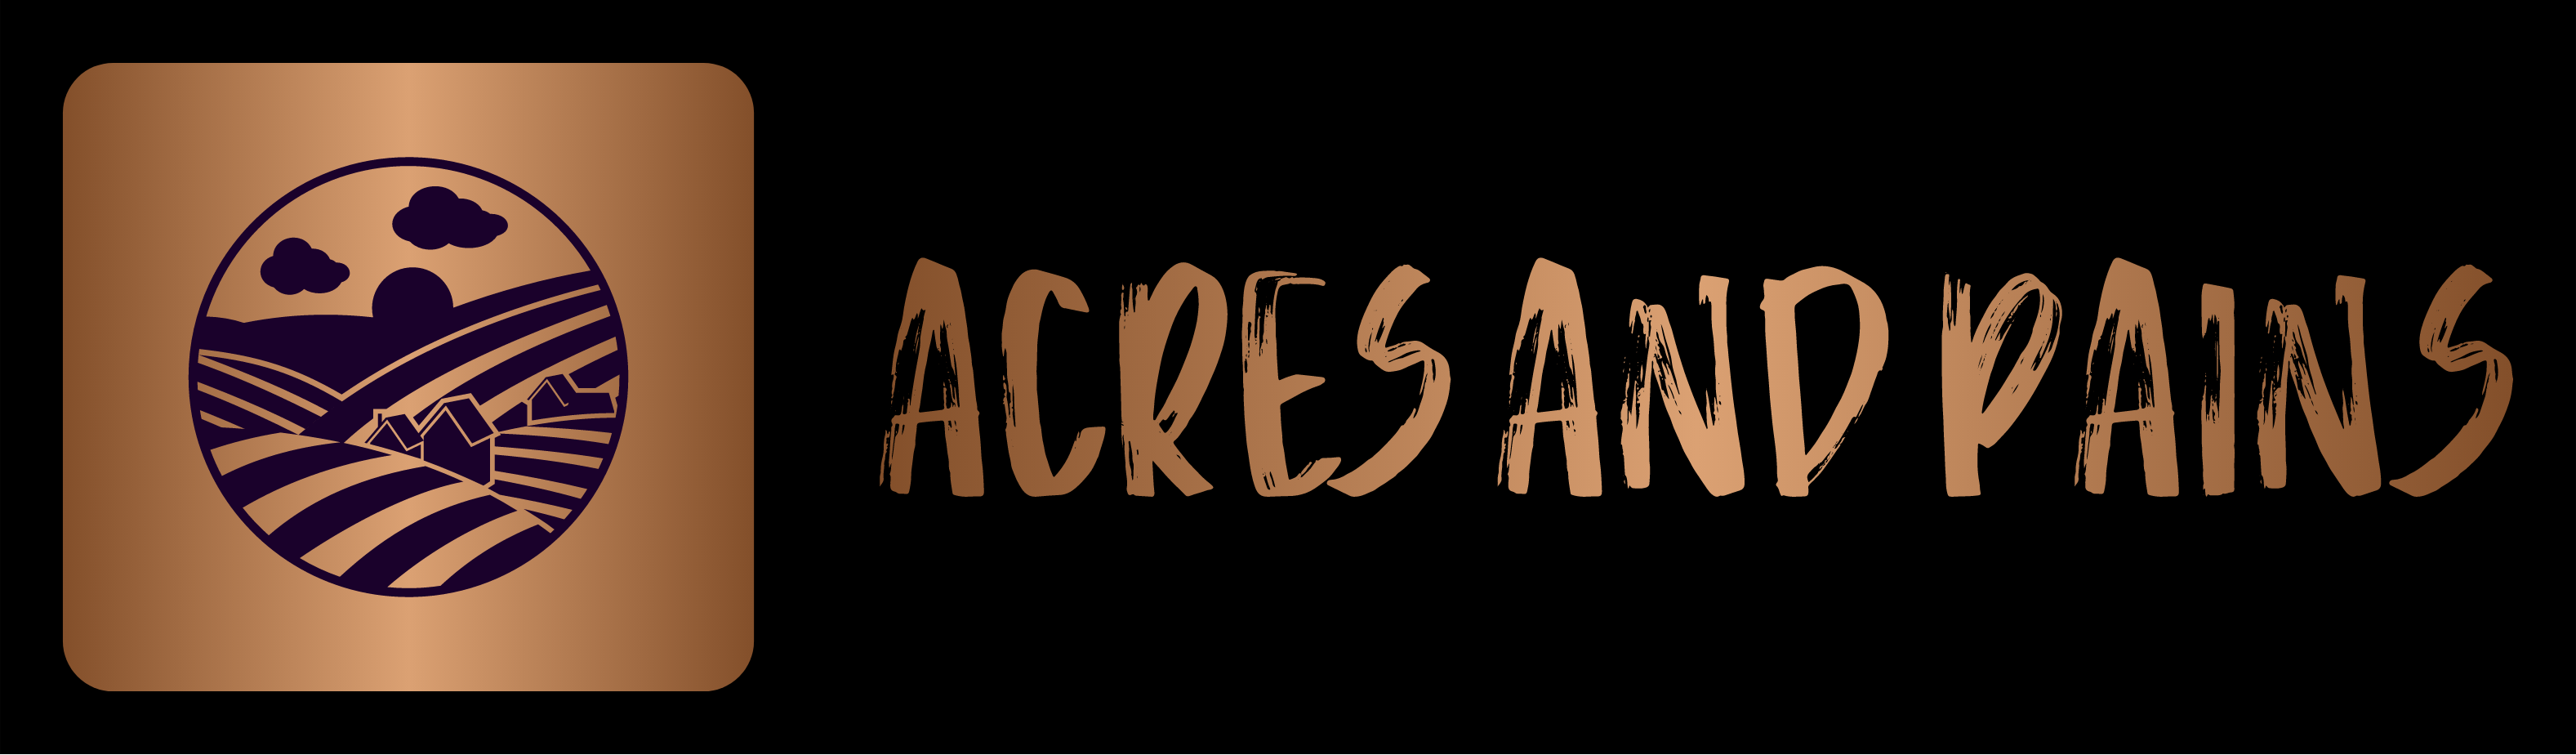 Acres and Pains